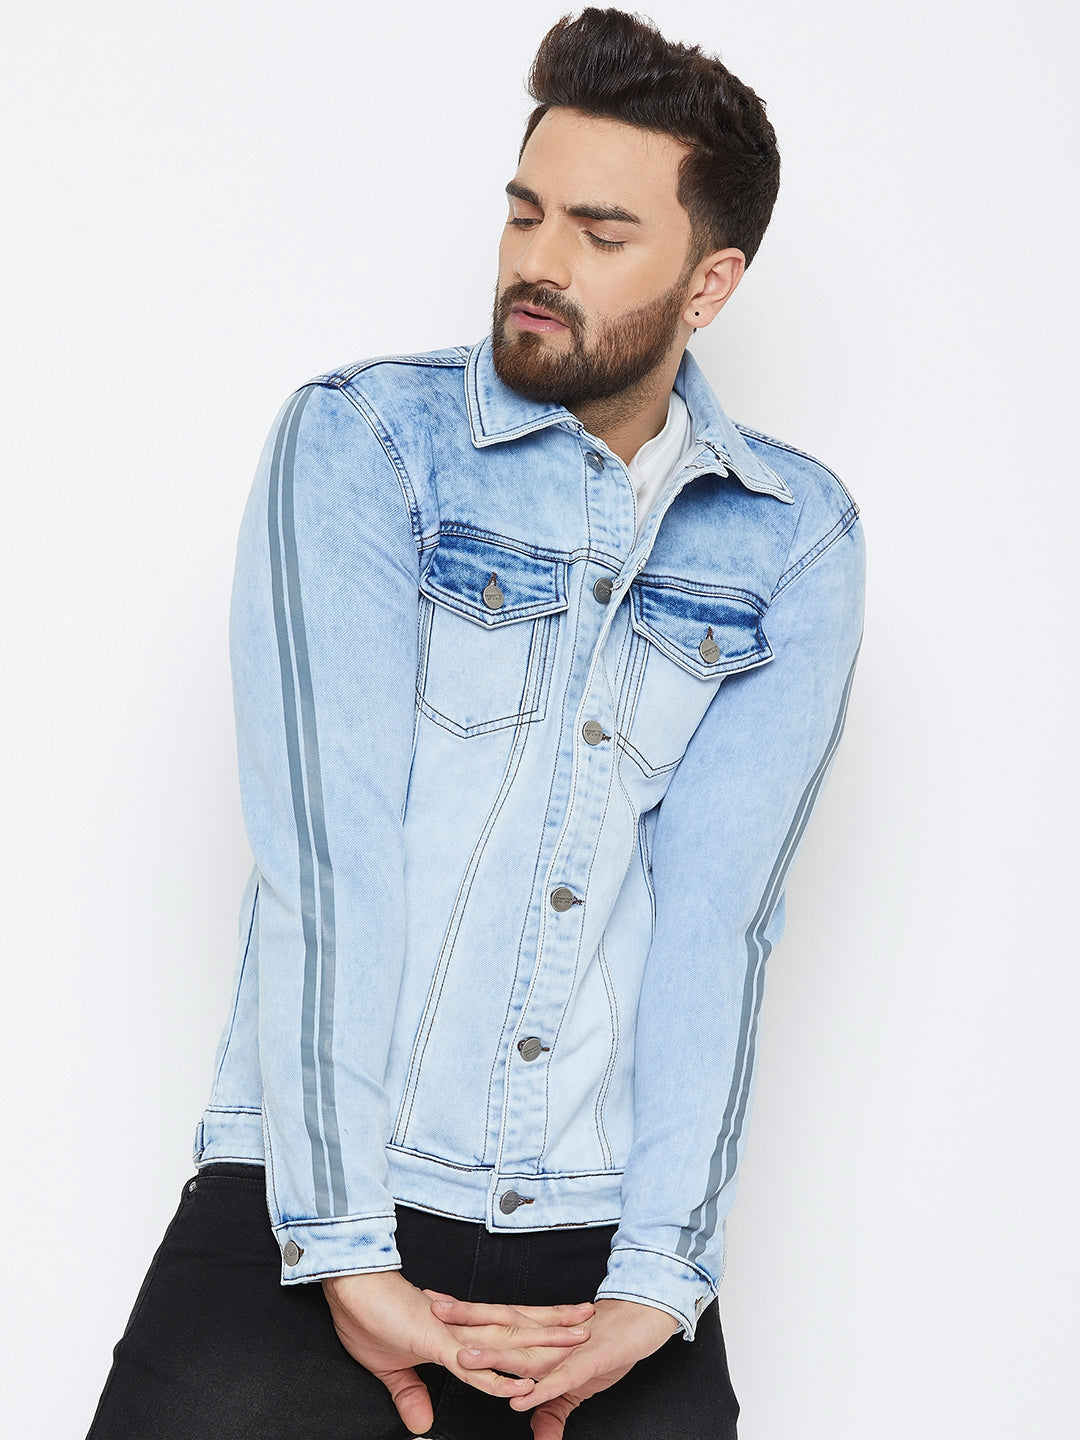 KROSSSTITCH Men's Full Sleeves Denim Jacket with Button Closure| with Stripe Trim Detail on Sleeves| Sky Blue